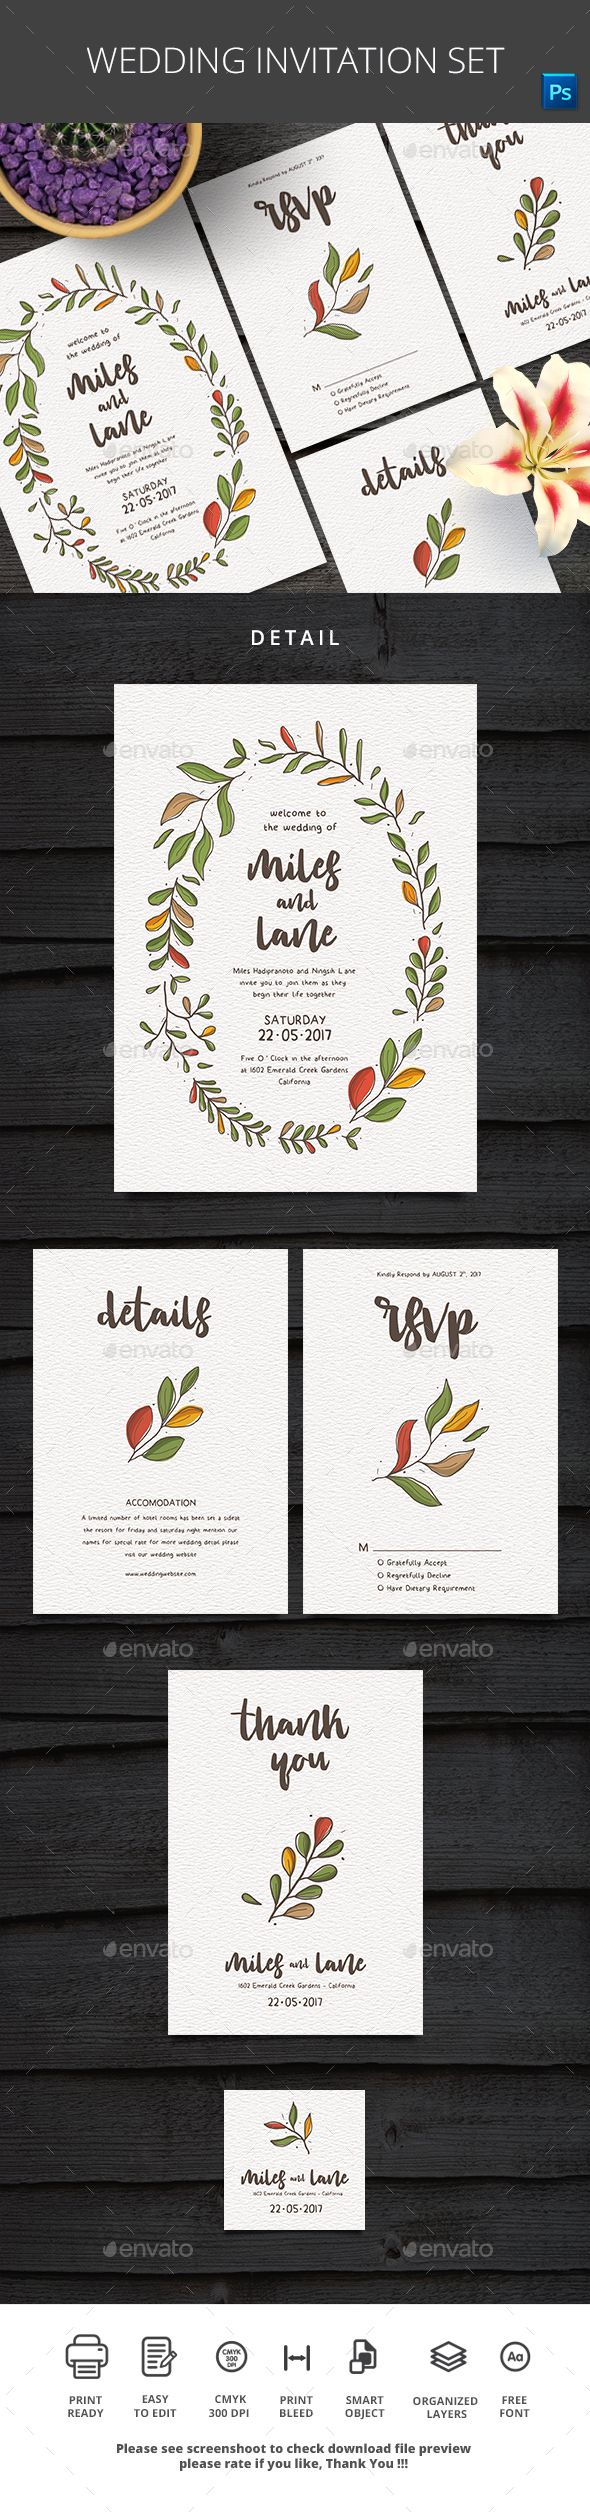 standard size wedding invitation%0A Wedding Invitation Set  u     Photoshop PSD  tropical  handdrawn  u     Download      https